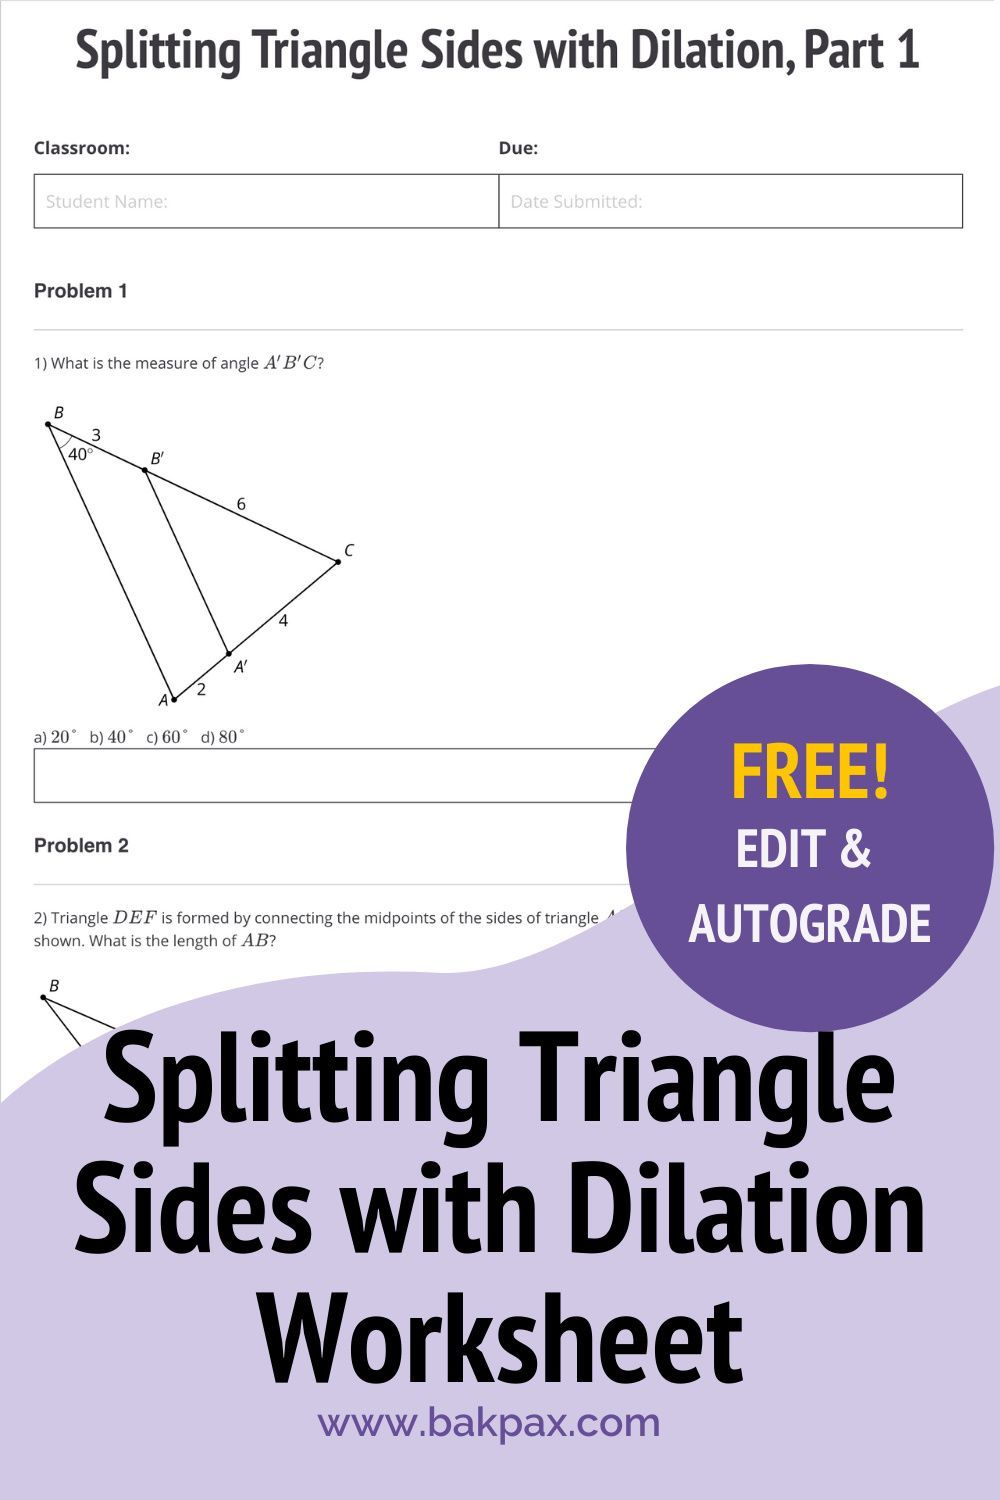 Dilations Translations Worksheet Answers Dilations Guided Notes And Worksheet In 2020 Math Guided Notes Guided Notes High School Geometry Notes